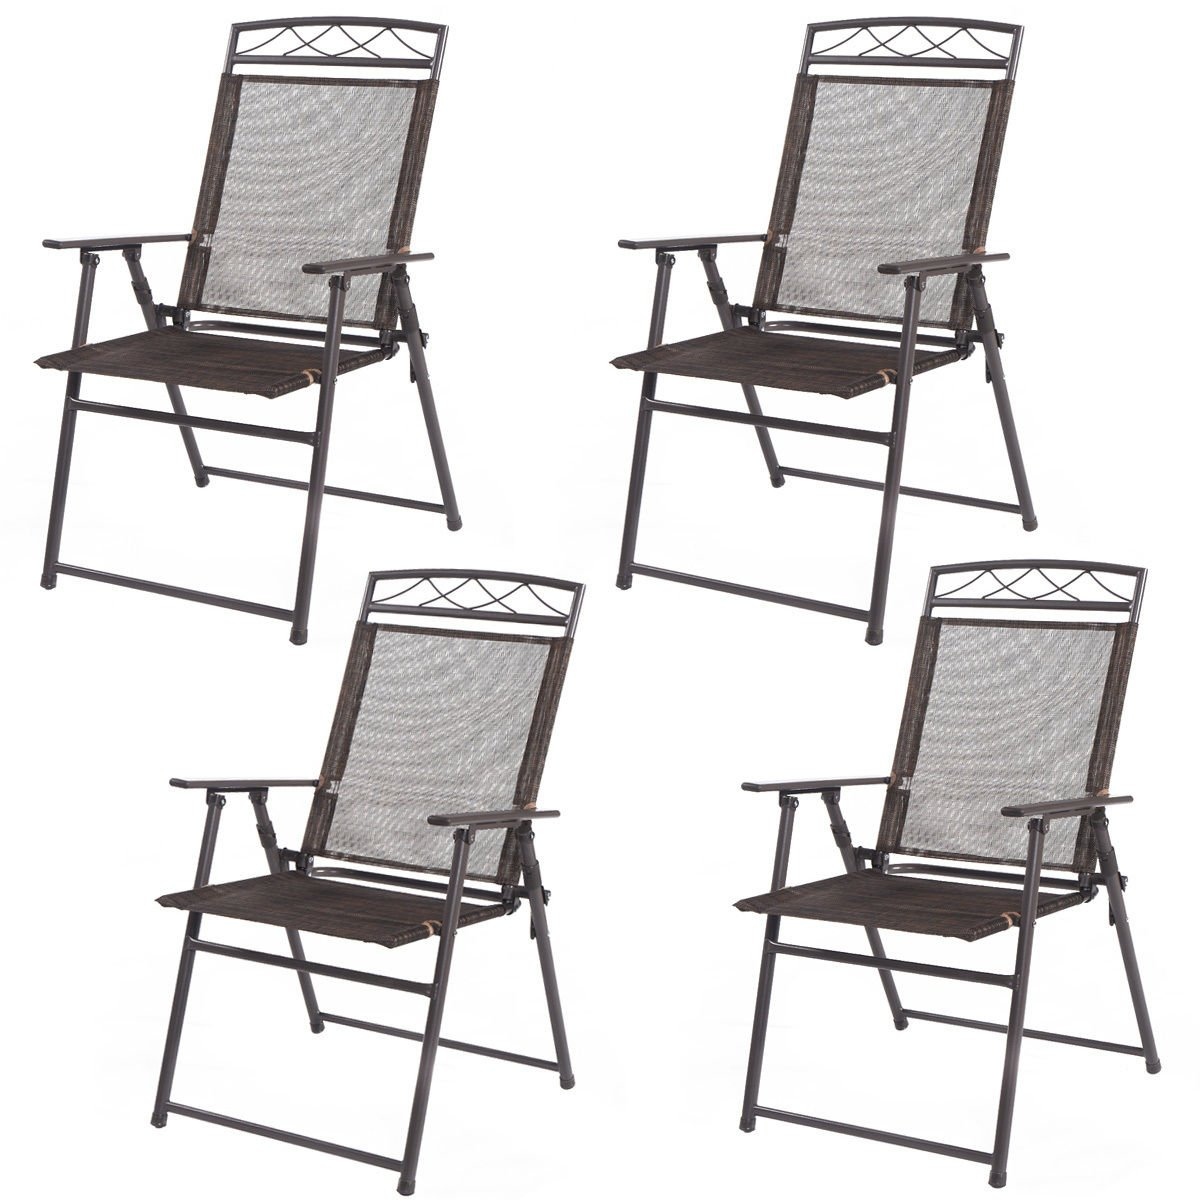 Giantex Set of 4 Patio Folding Sling Chairs Steel Camping Deck Garden Pool